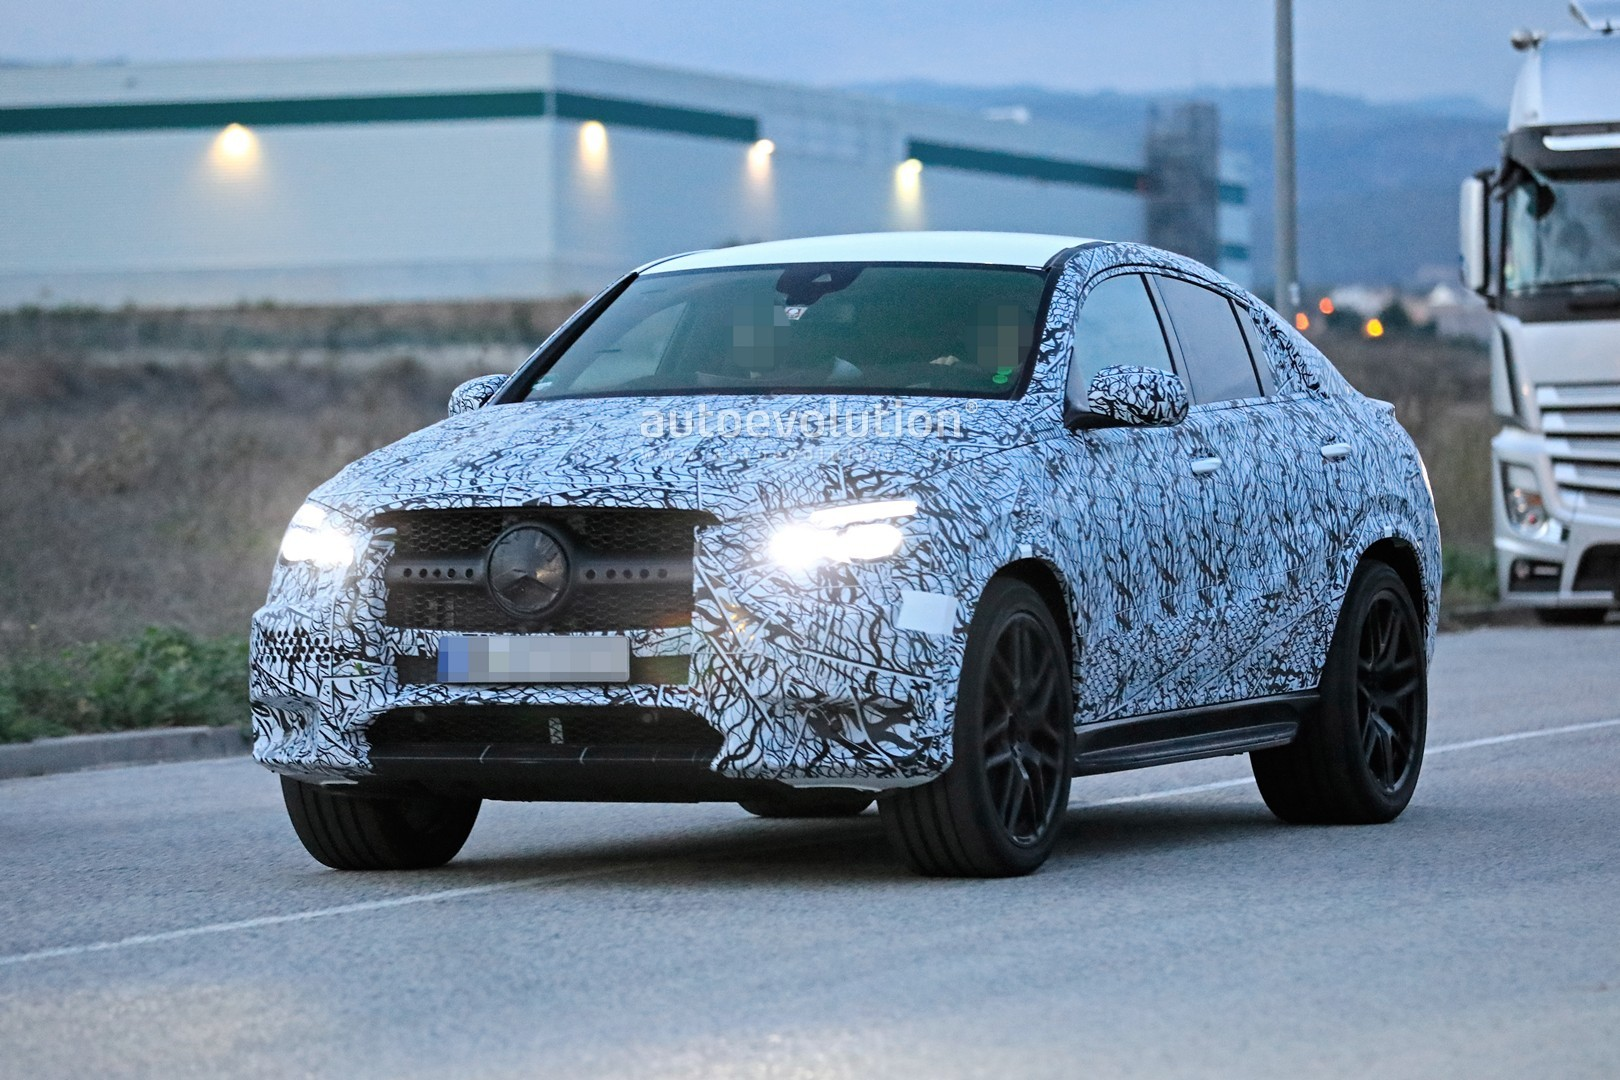 mercedes-a​mg-gle-53-​coupe-make​s-spyshot-​debut-with​-quad-exha​ust-tips_3